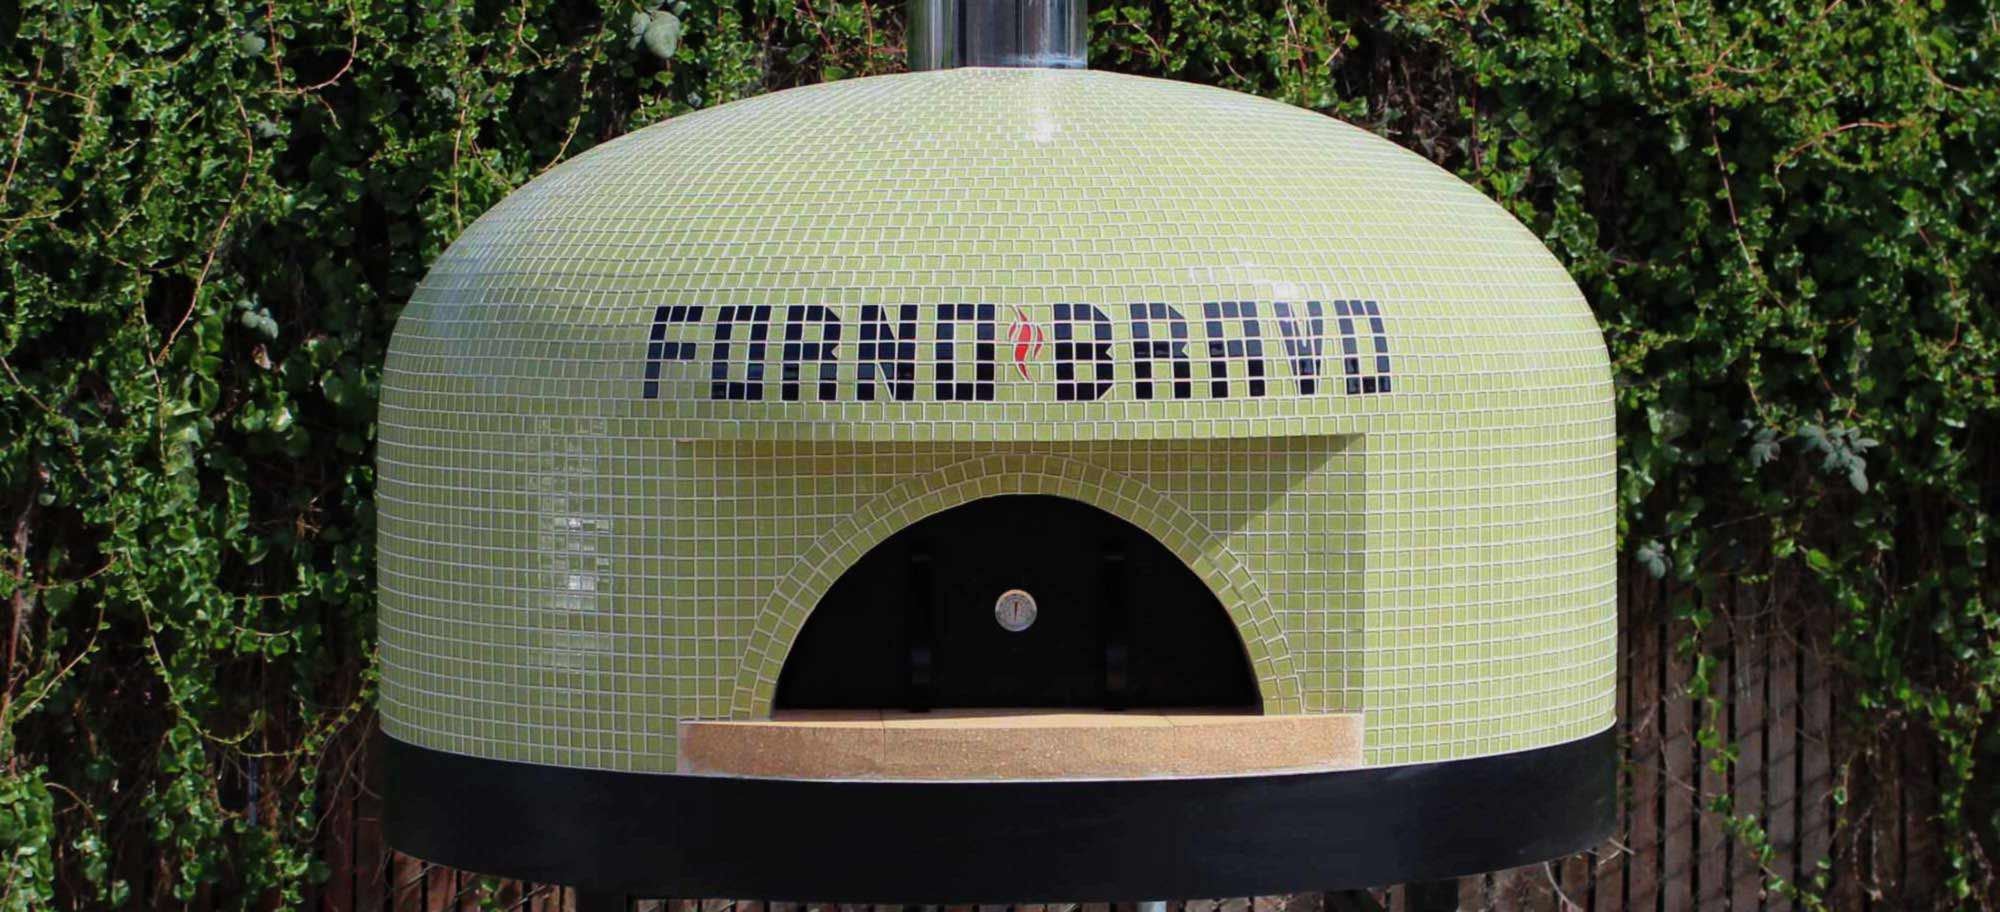 Forno Bravo Your Pizza Oven Awaits